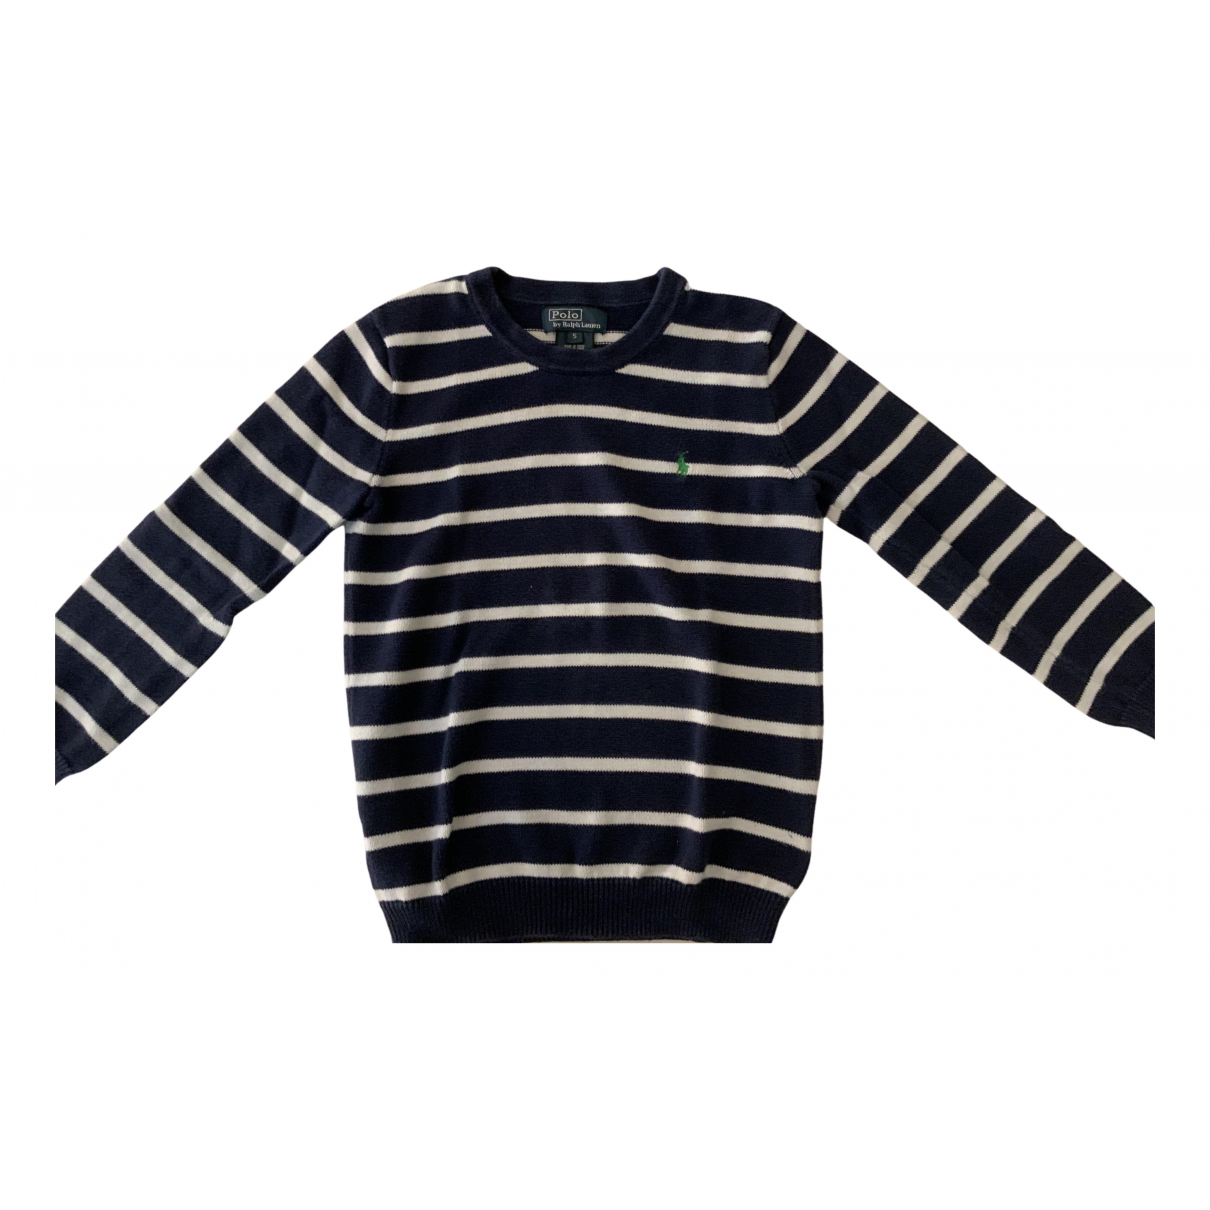 Polo Ralph Lauren N Blue Cotton Knitwear for Kids 5 years - up to 108cm FR